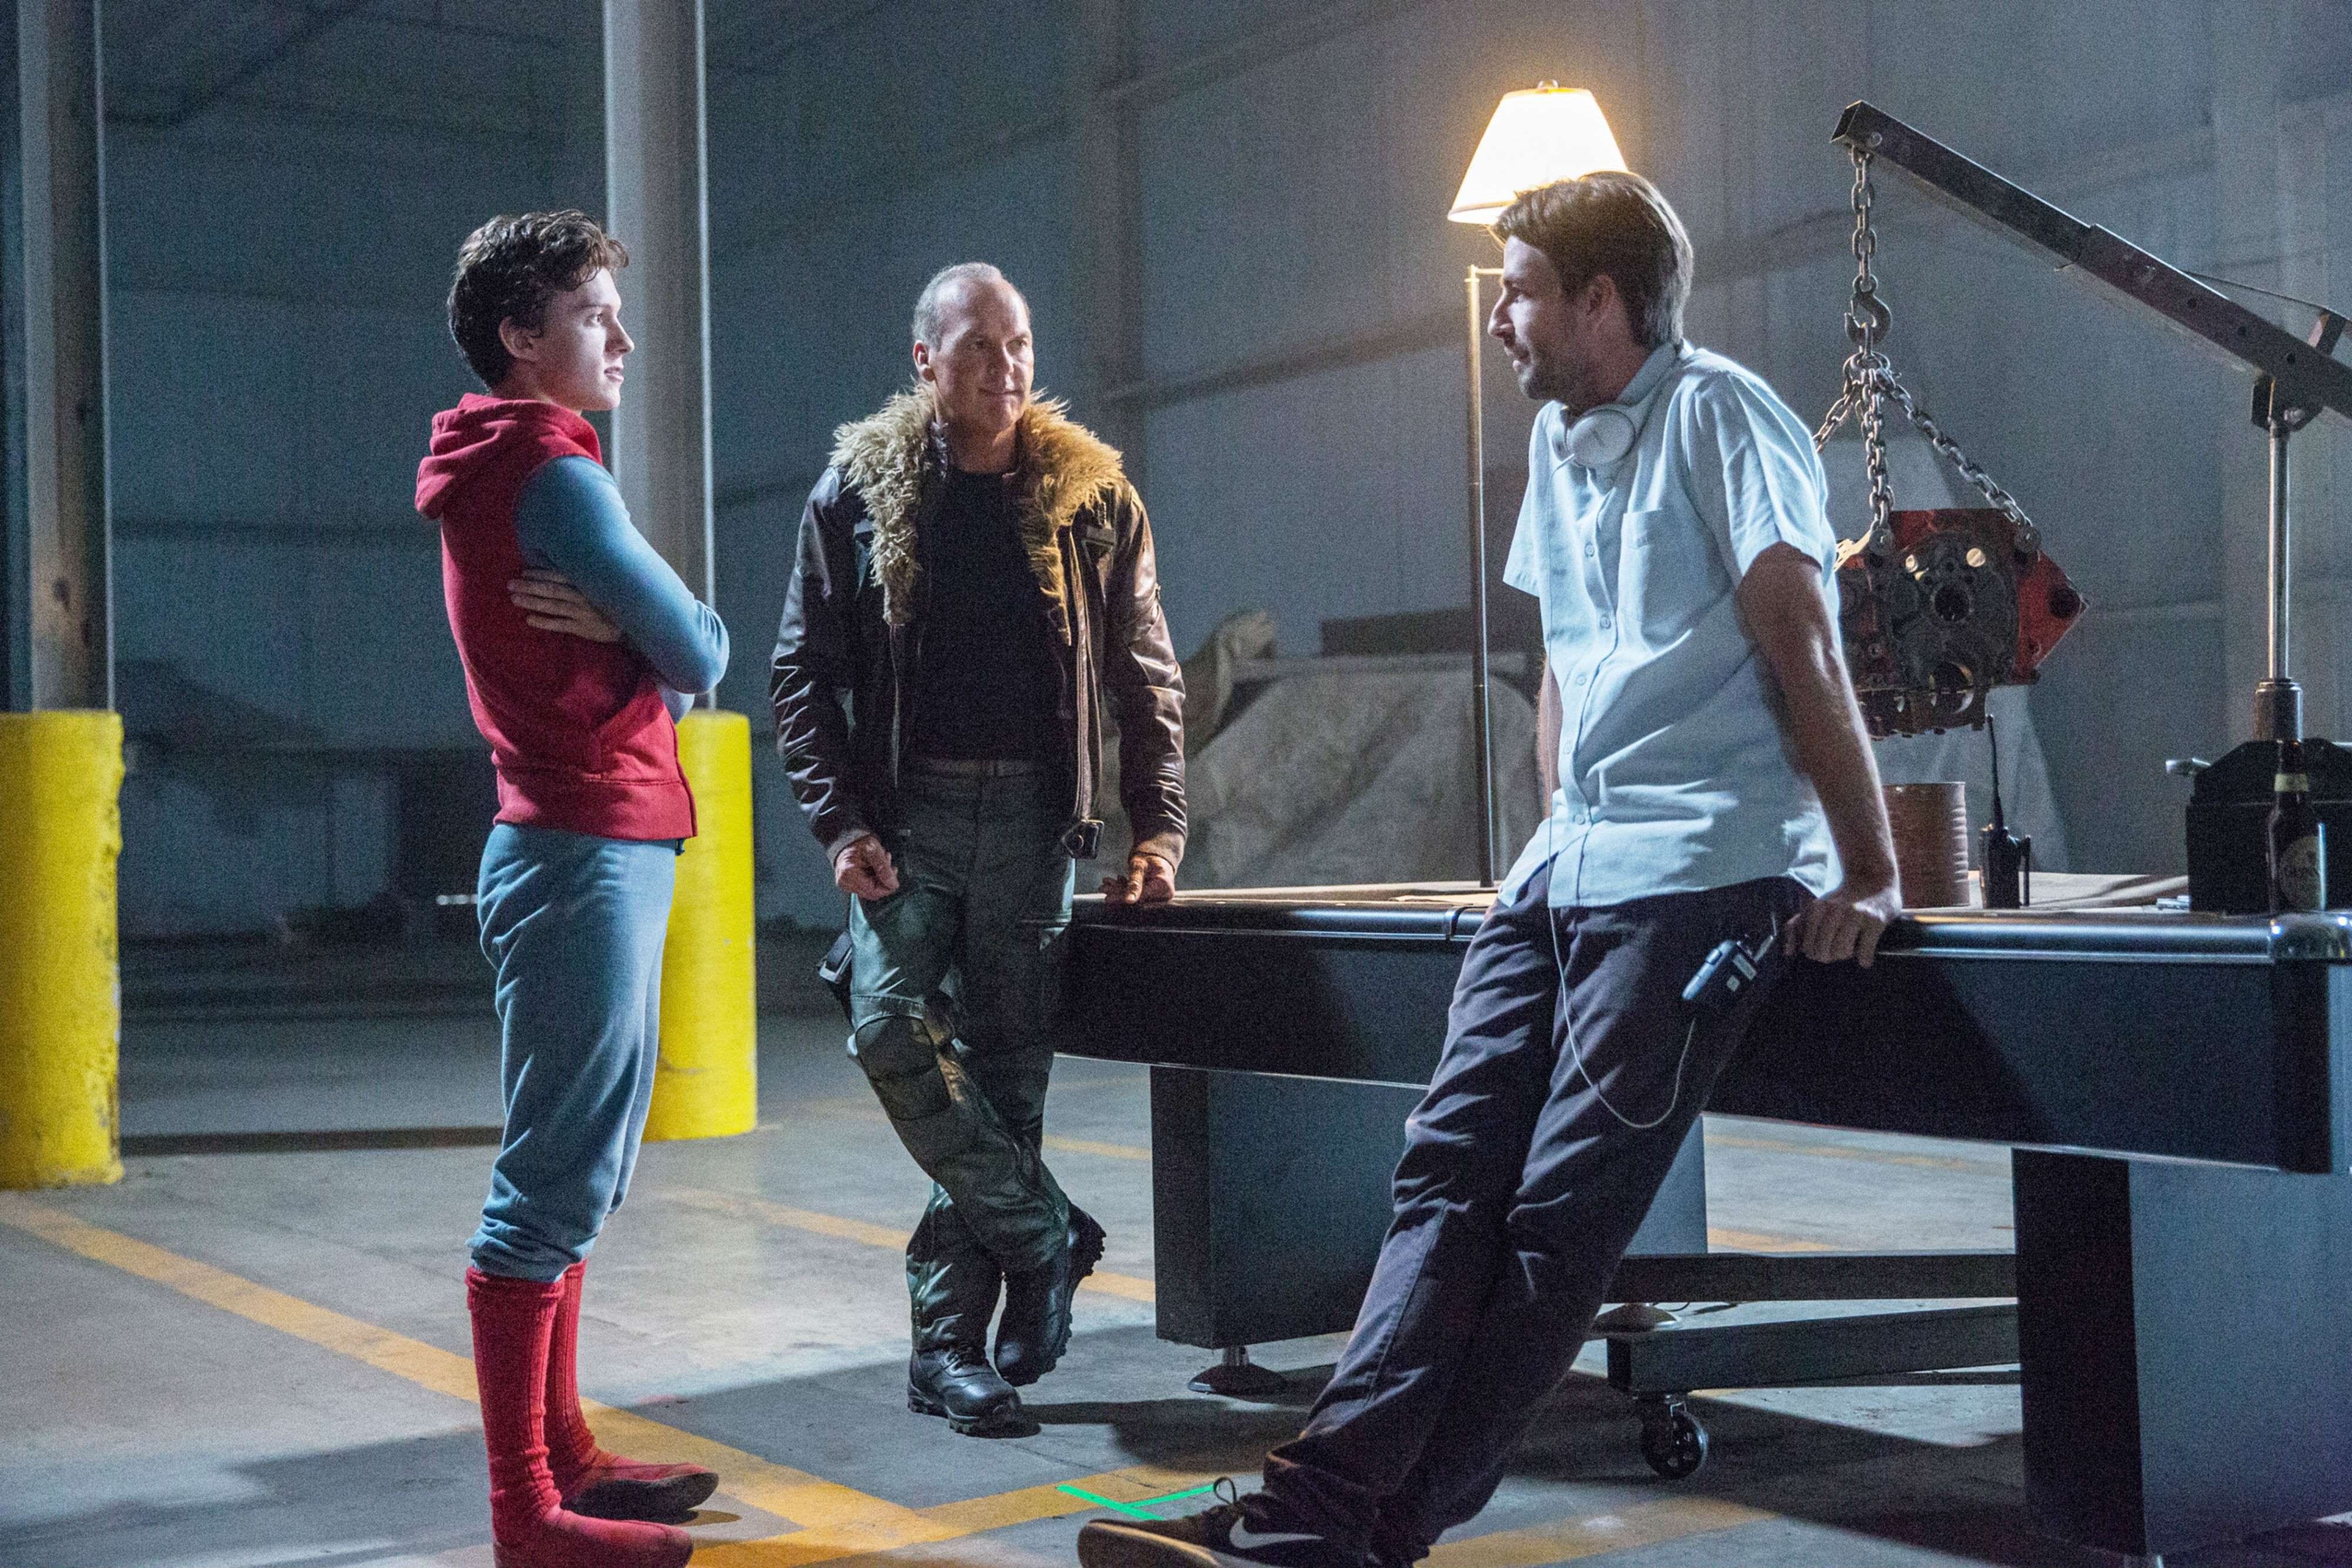 Movie News: 'Spider-Man: Homecoming' Director in Talks for